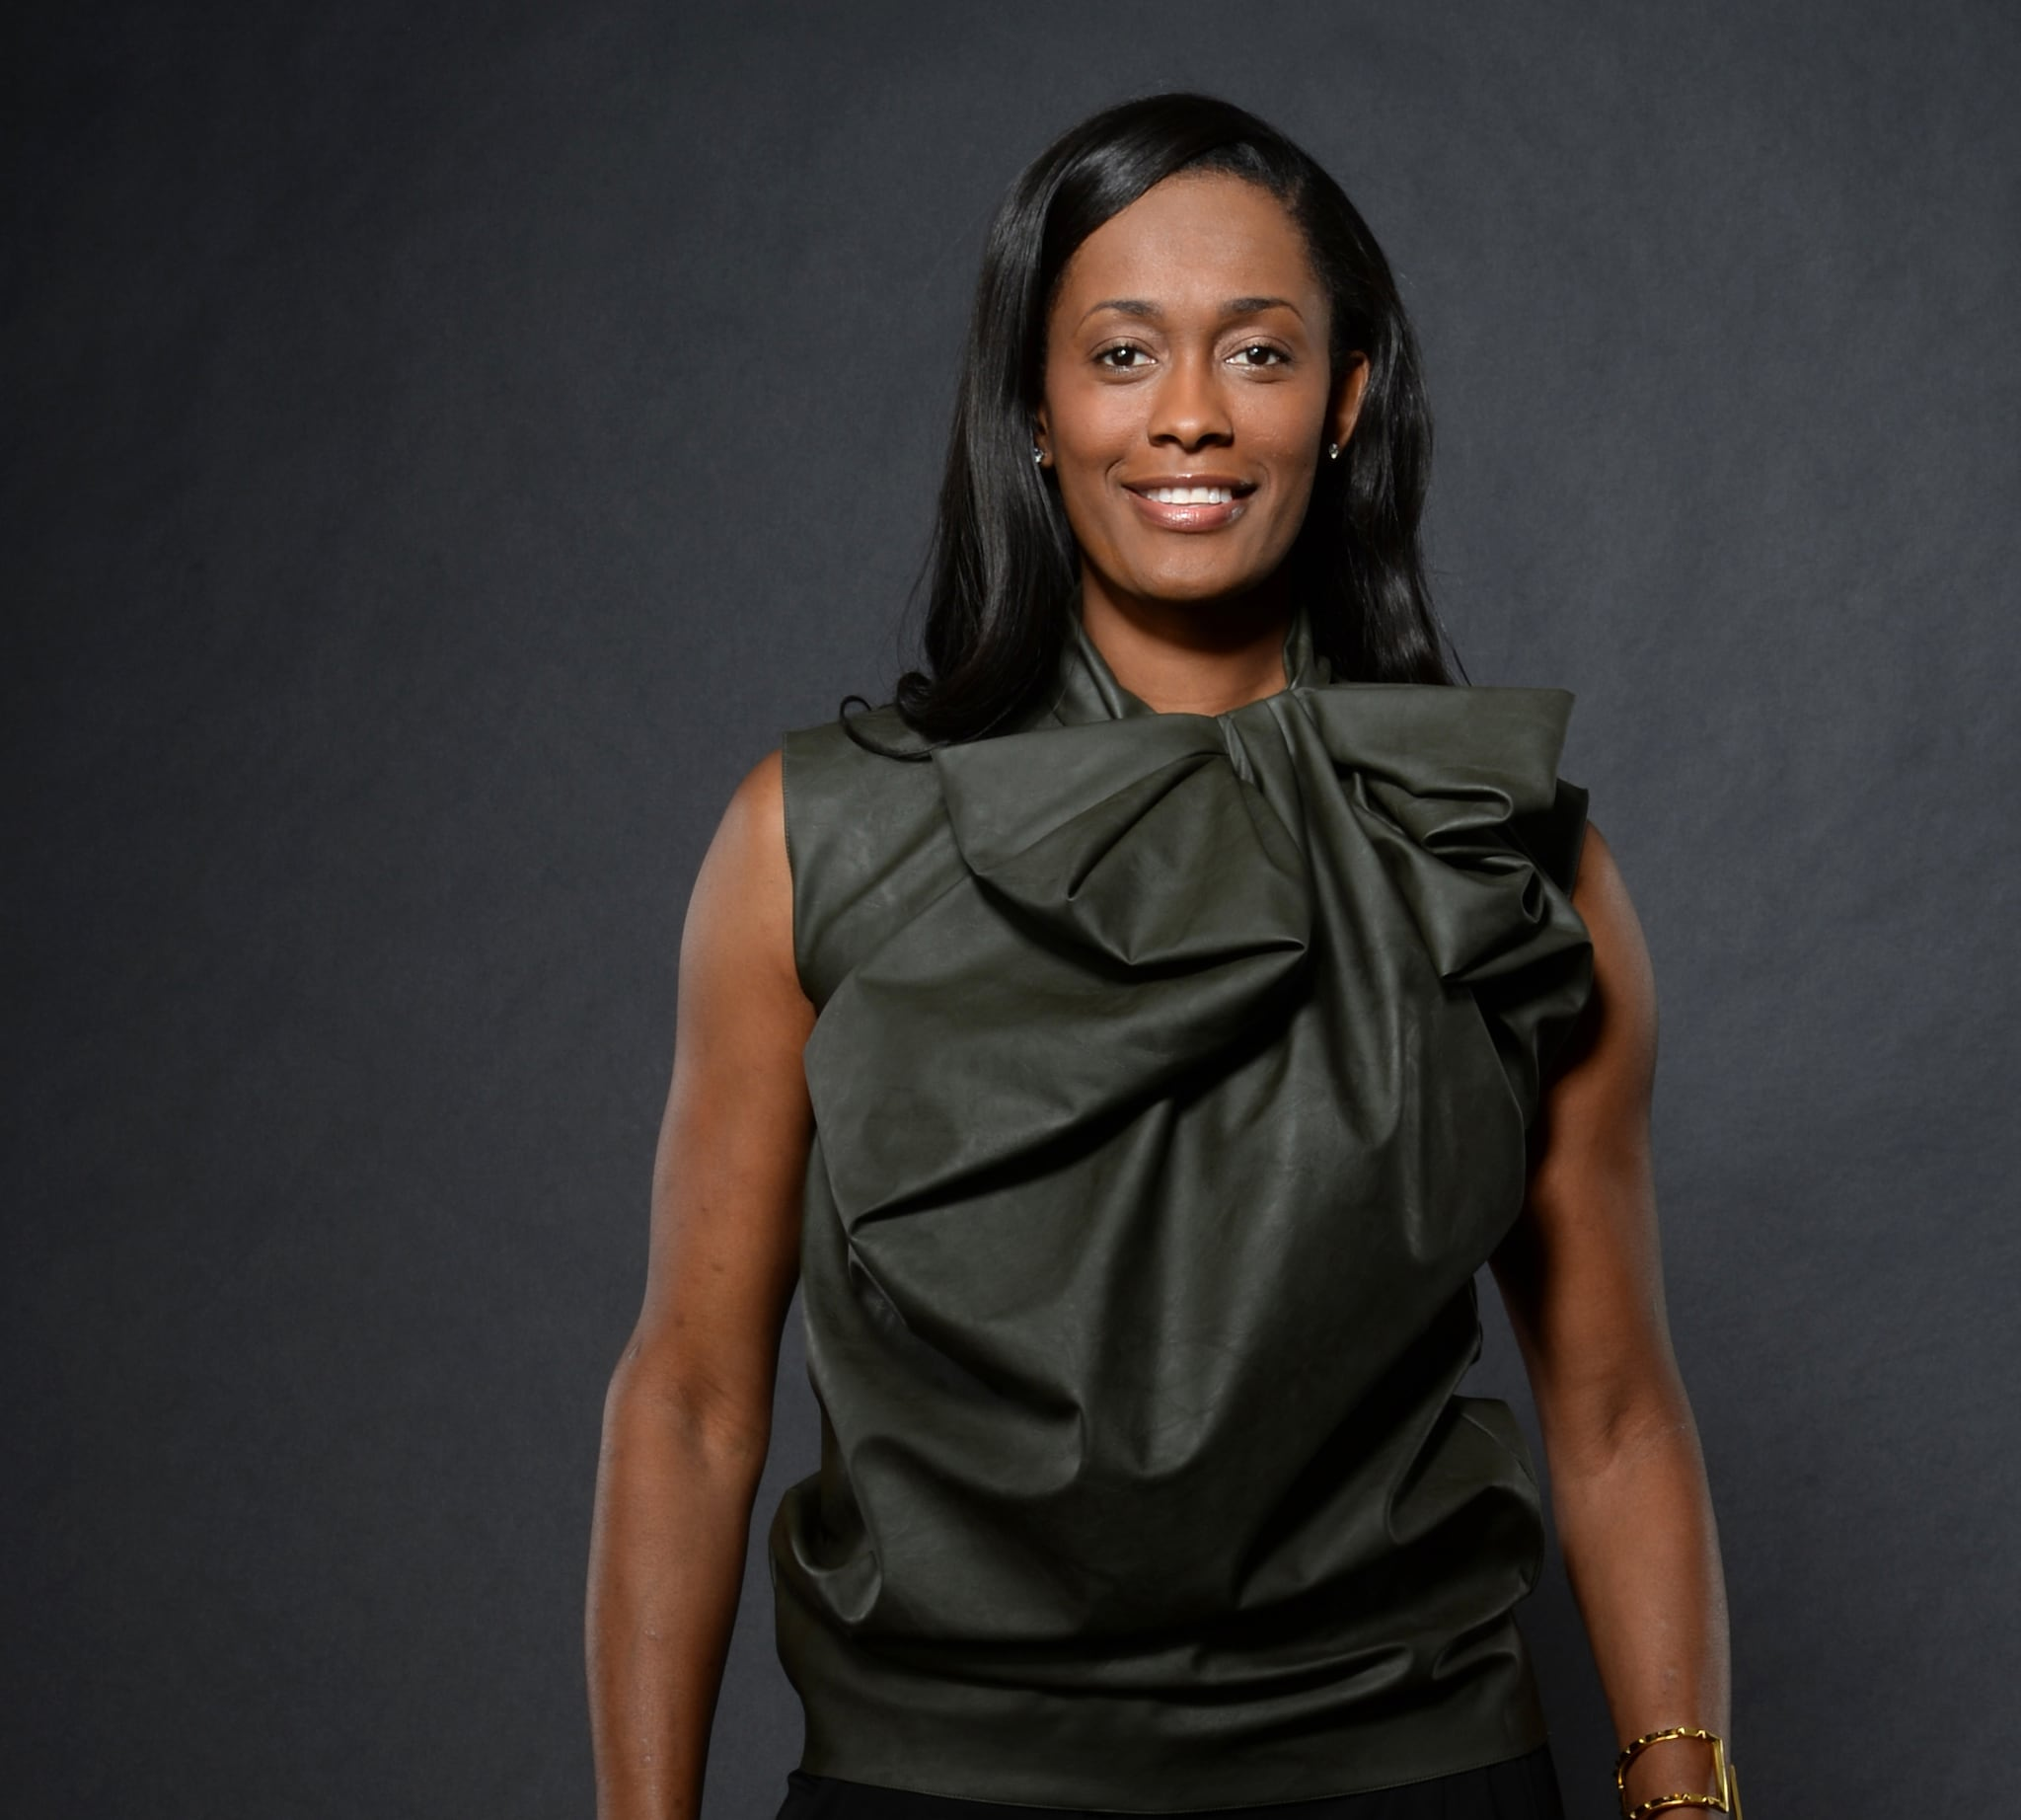 NEW YORK, NY - FEBRUARY 15:  Swin Cash #32 of the New York Liberty poses for portraits during the NBAE Circuit as part of 2015 All-Star Weekend at the Sheraton Times Square Hotel on February 15, 2015 in New York, New York. NOTE TO USER: User expressly acknowledges and agrees that, by downloading and/or using this photograph, user is consenting to the terms and conditions of the Getty Images License Agreement.  Mandatory Copyright Notice: Copyright 2015 NBAE (Photo by Jennifer Pottheiser/NBAE via Getty Images)